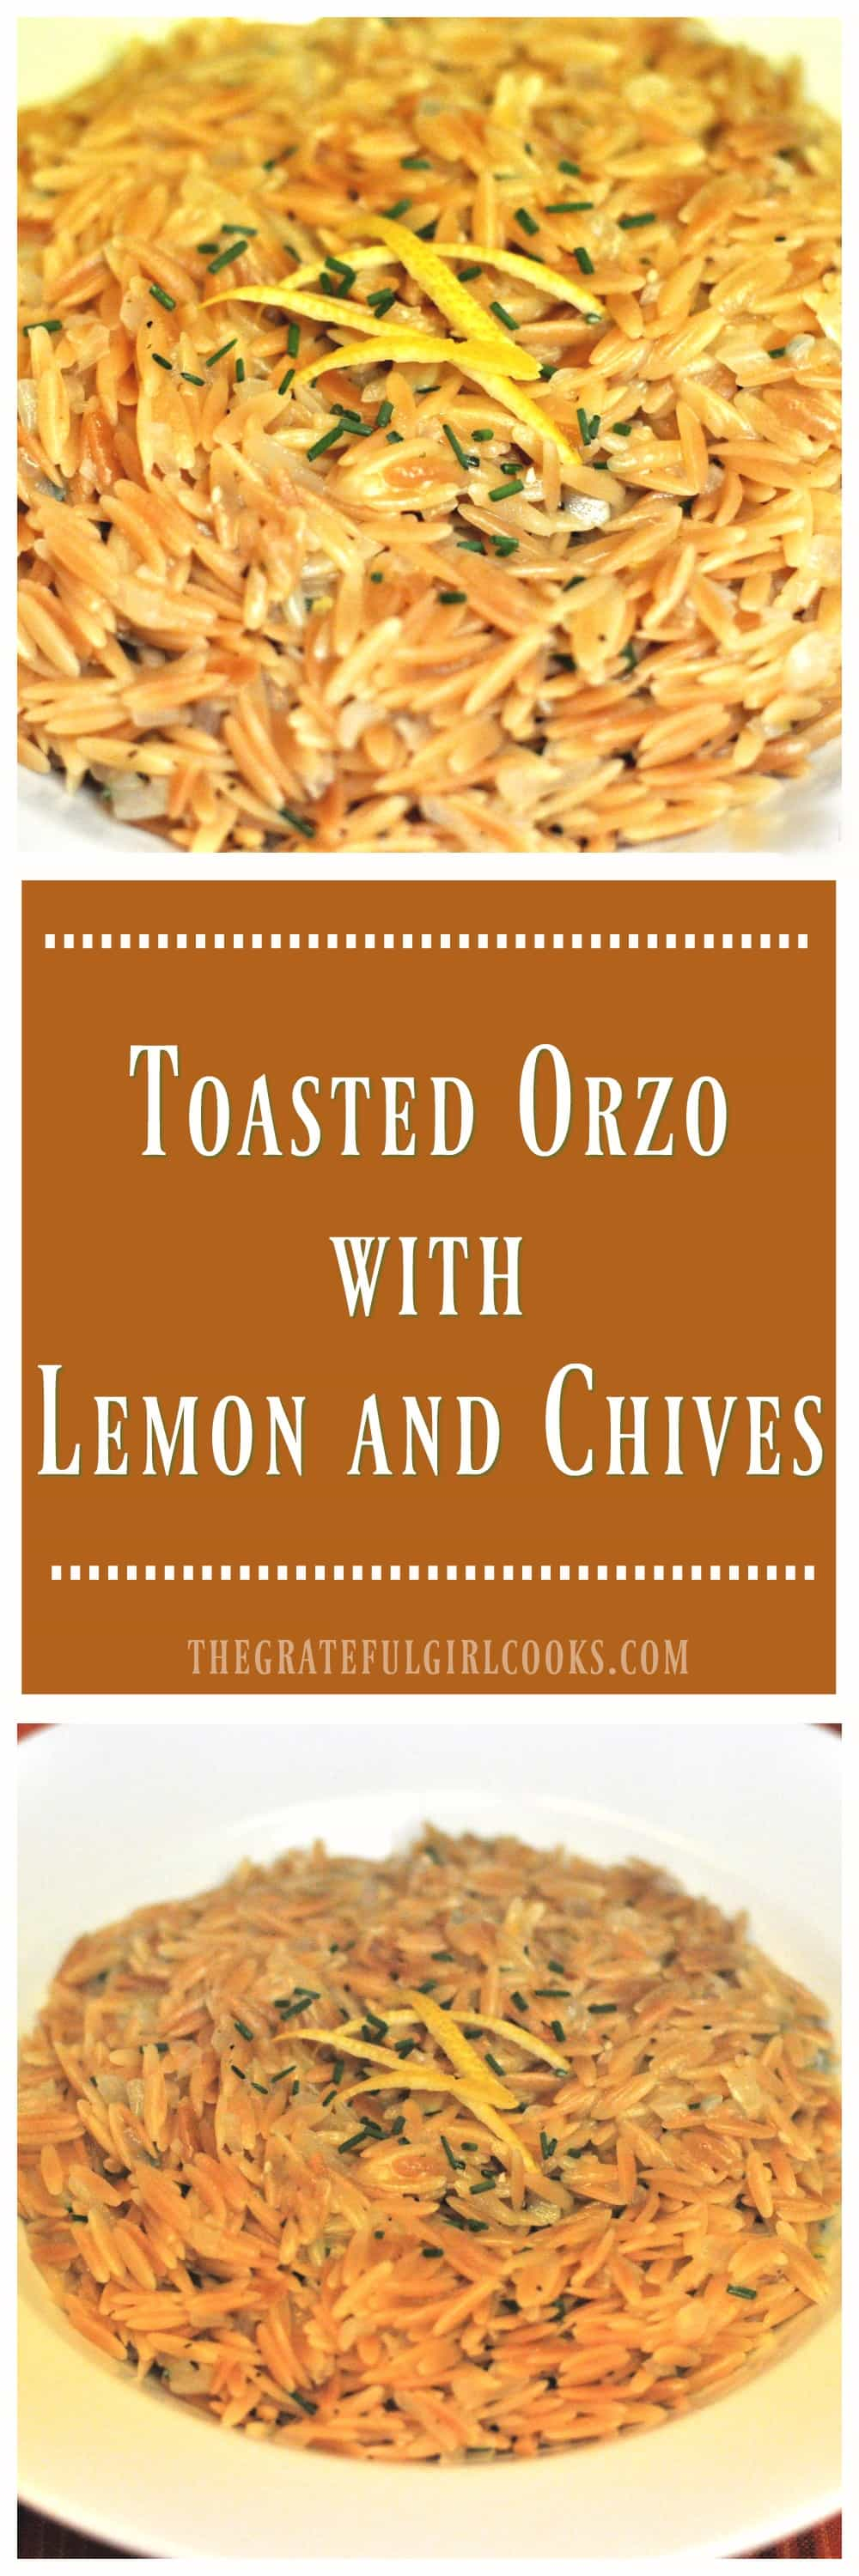 Toasted Orzo with Lemon and Chives / The Grateful Girl Cooks! Looking for a fabulous tasting side dish? Toasted Orzo with Lemon and Chives is a simple to prepare and absolutely delicious accompaniment for chicken, pork, seafood or beef!